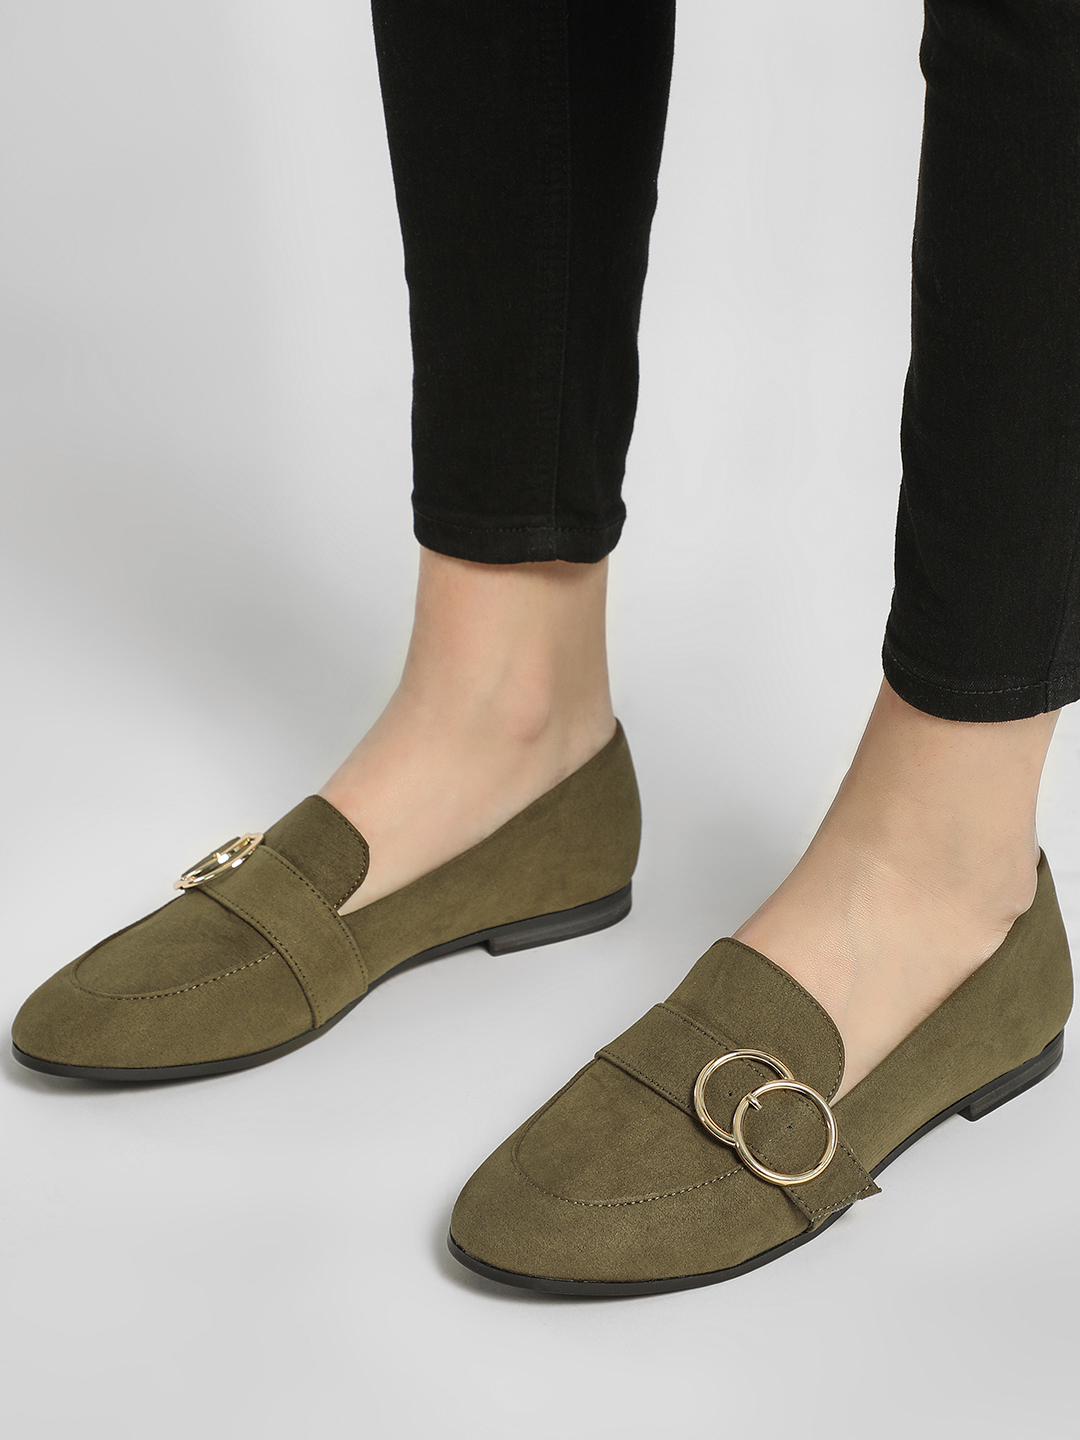 New Look Green Buckle Detail Flat Shoes 1